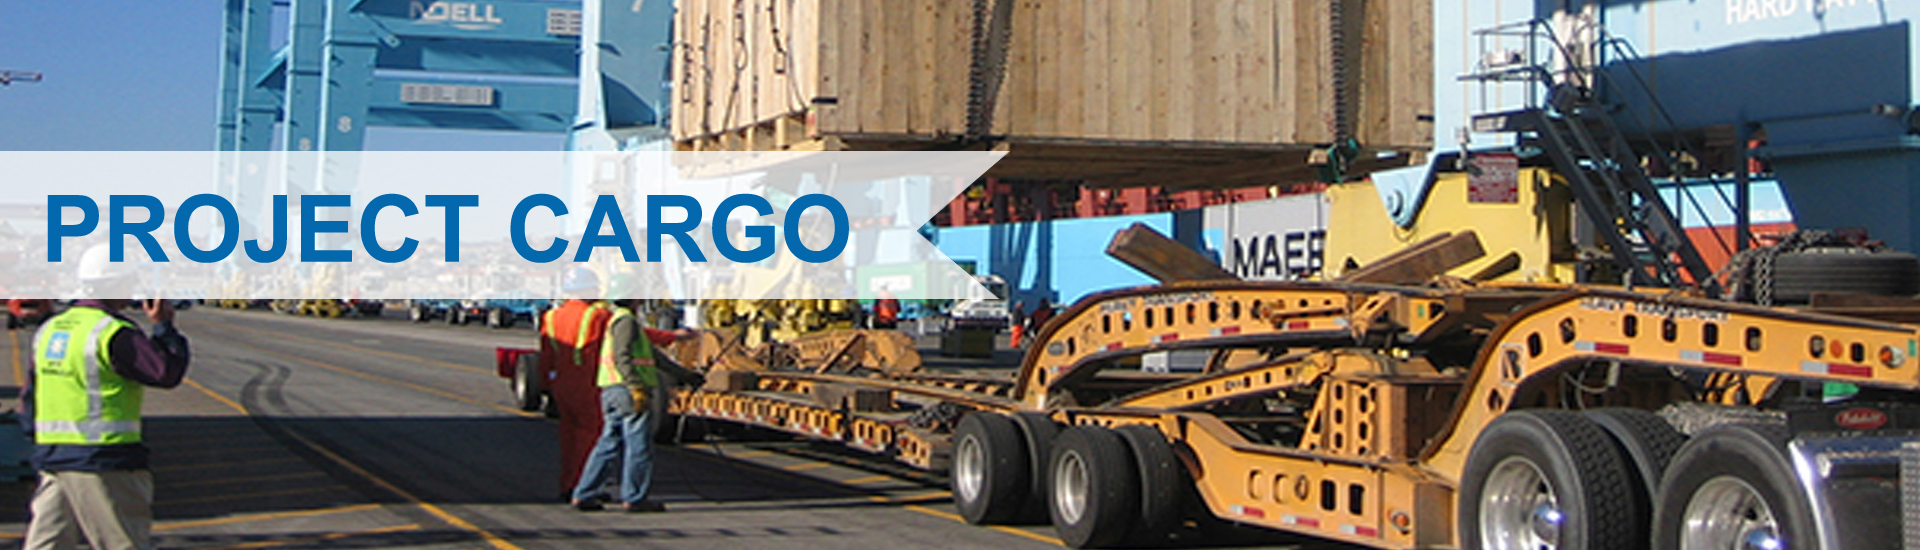 project cargo banner service in